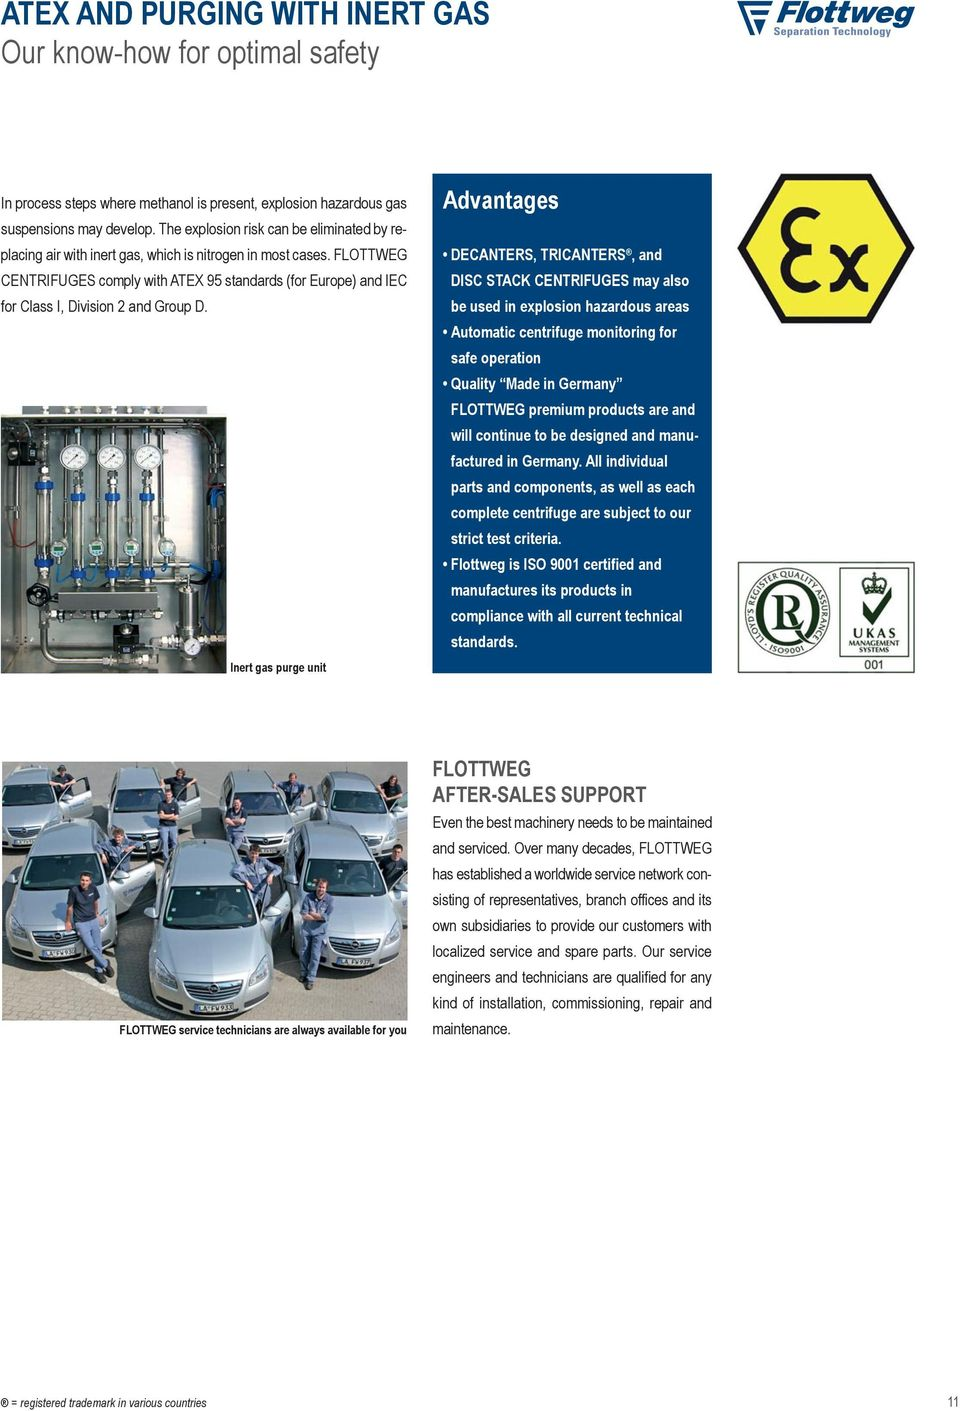 FLOTTWEG CENTRIFUGES comply with ATEX 95 standards (for Europe) and IEC for Class I, Division 2 and Group D.